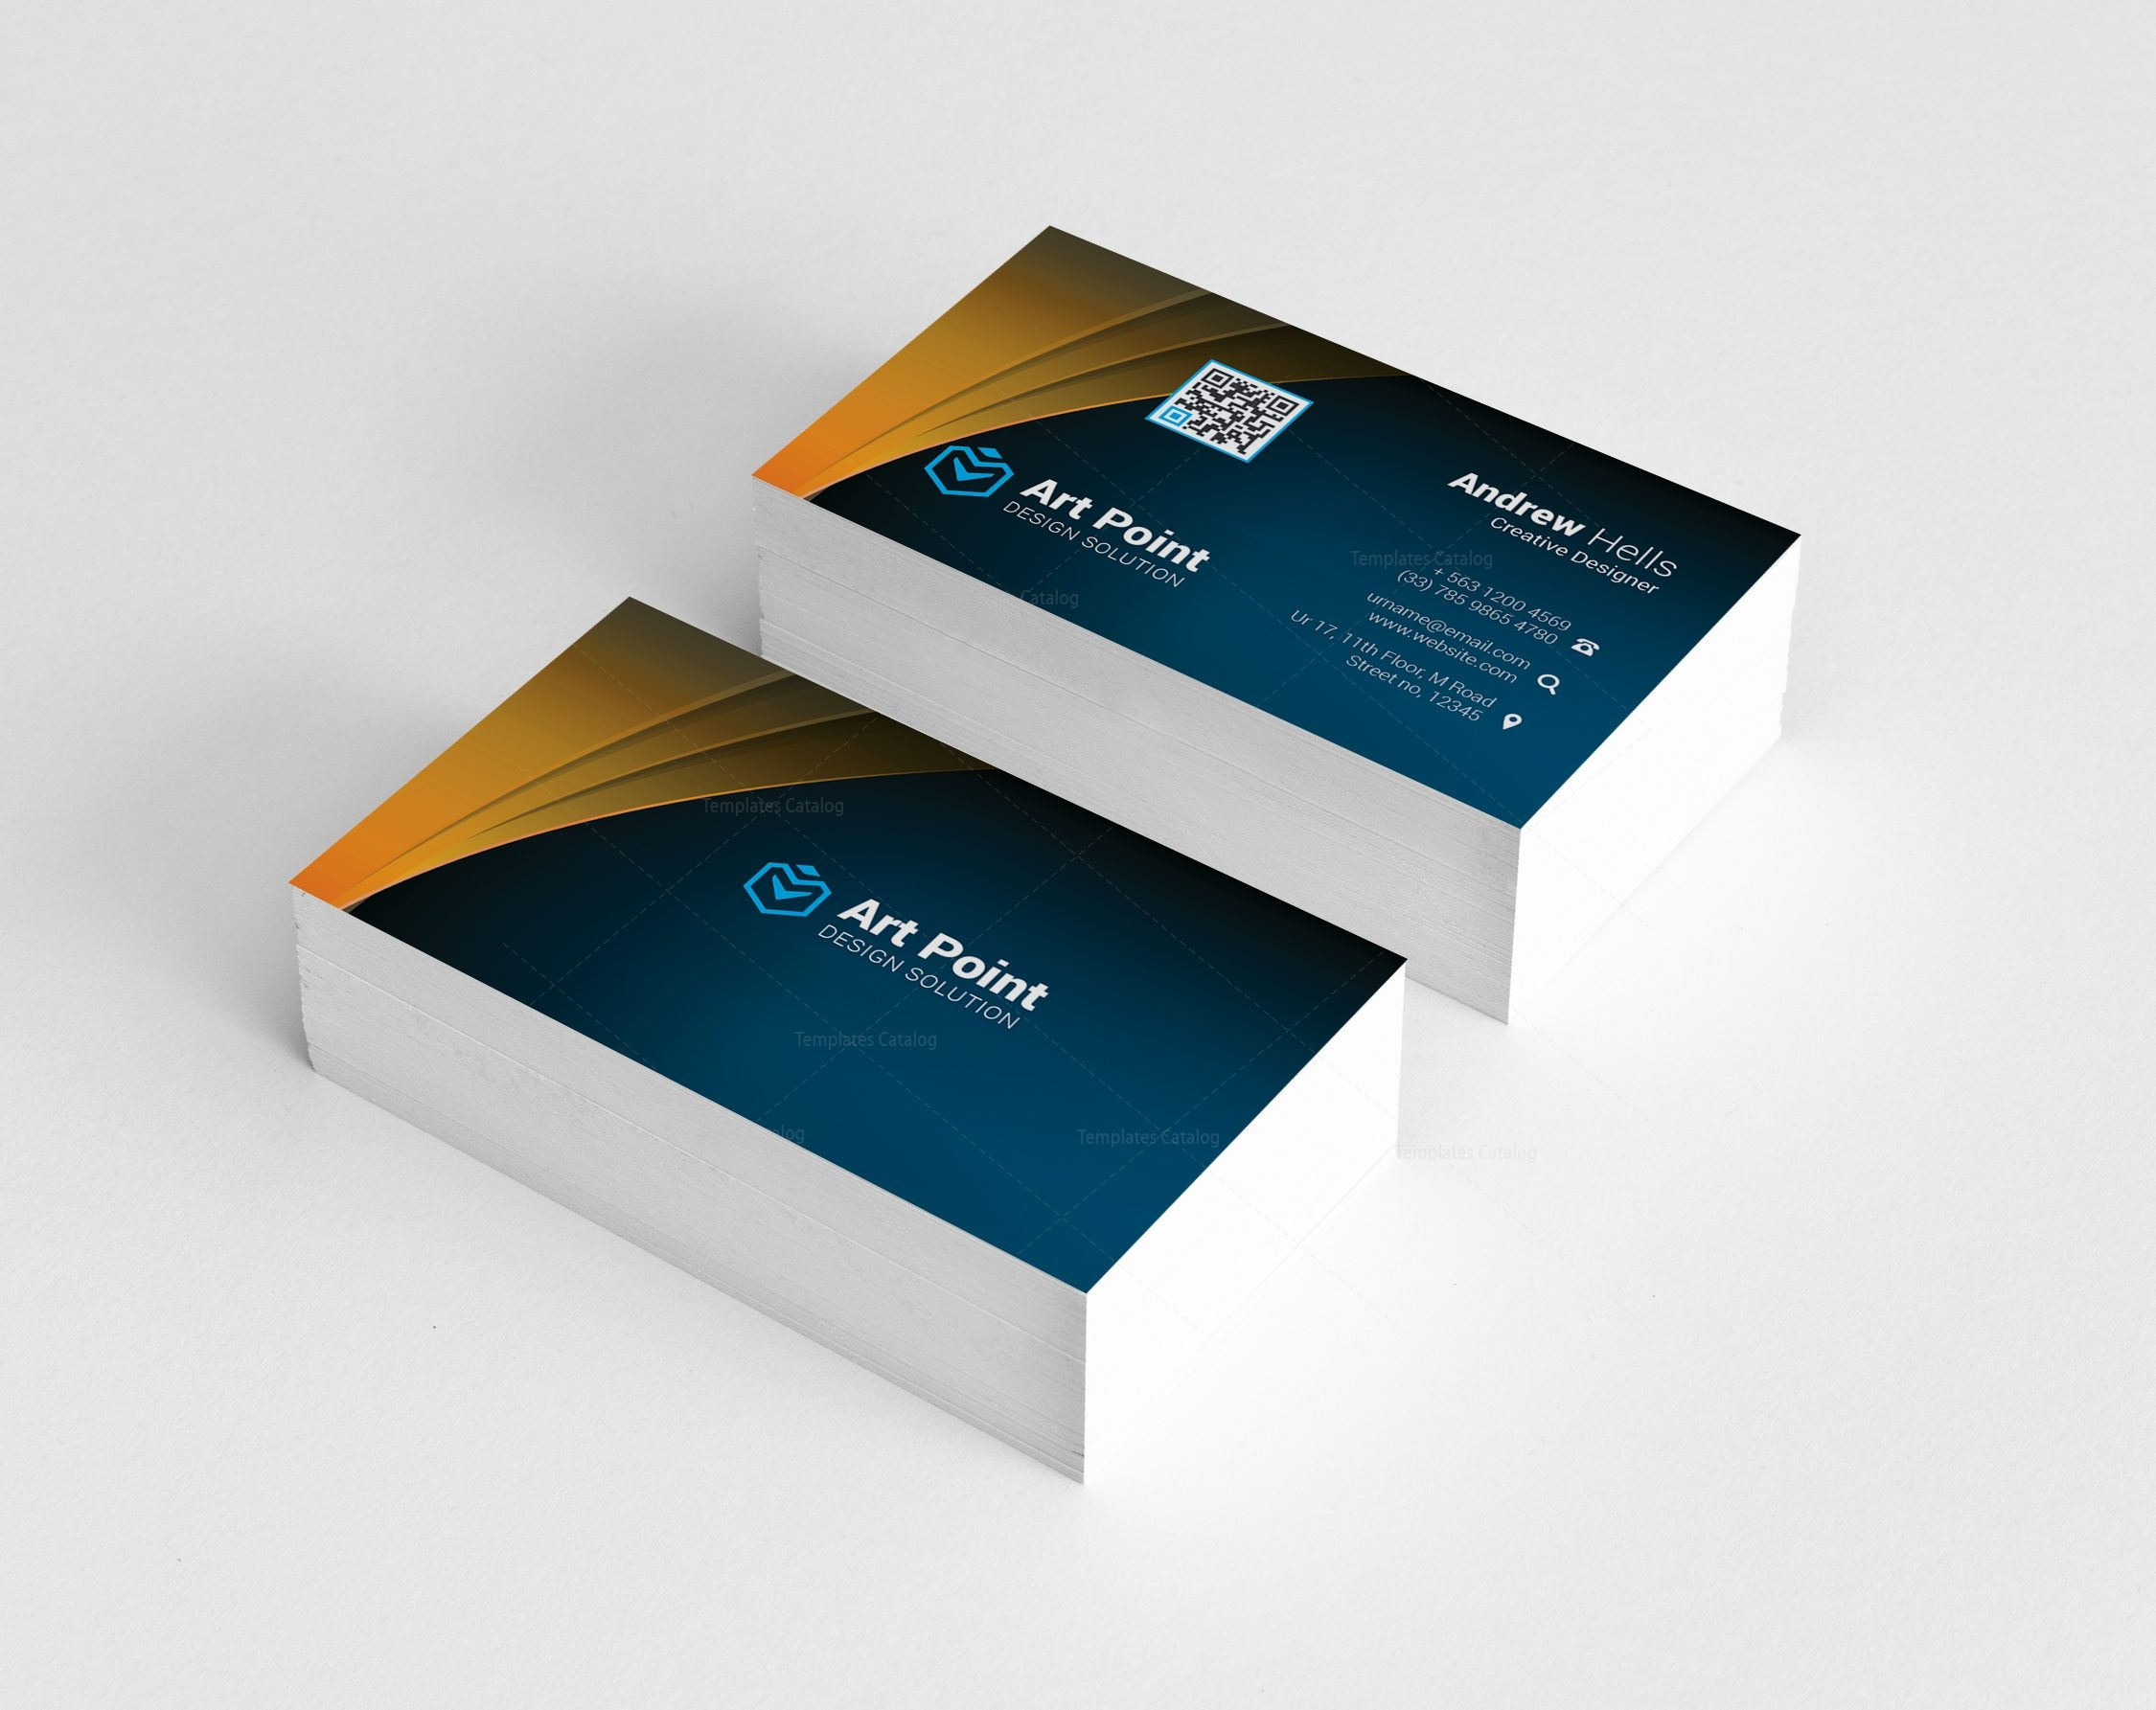 Asclepius Professional Corporate Visit Card Template 2